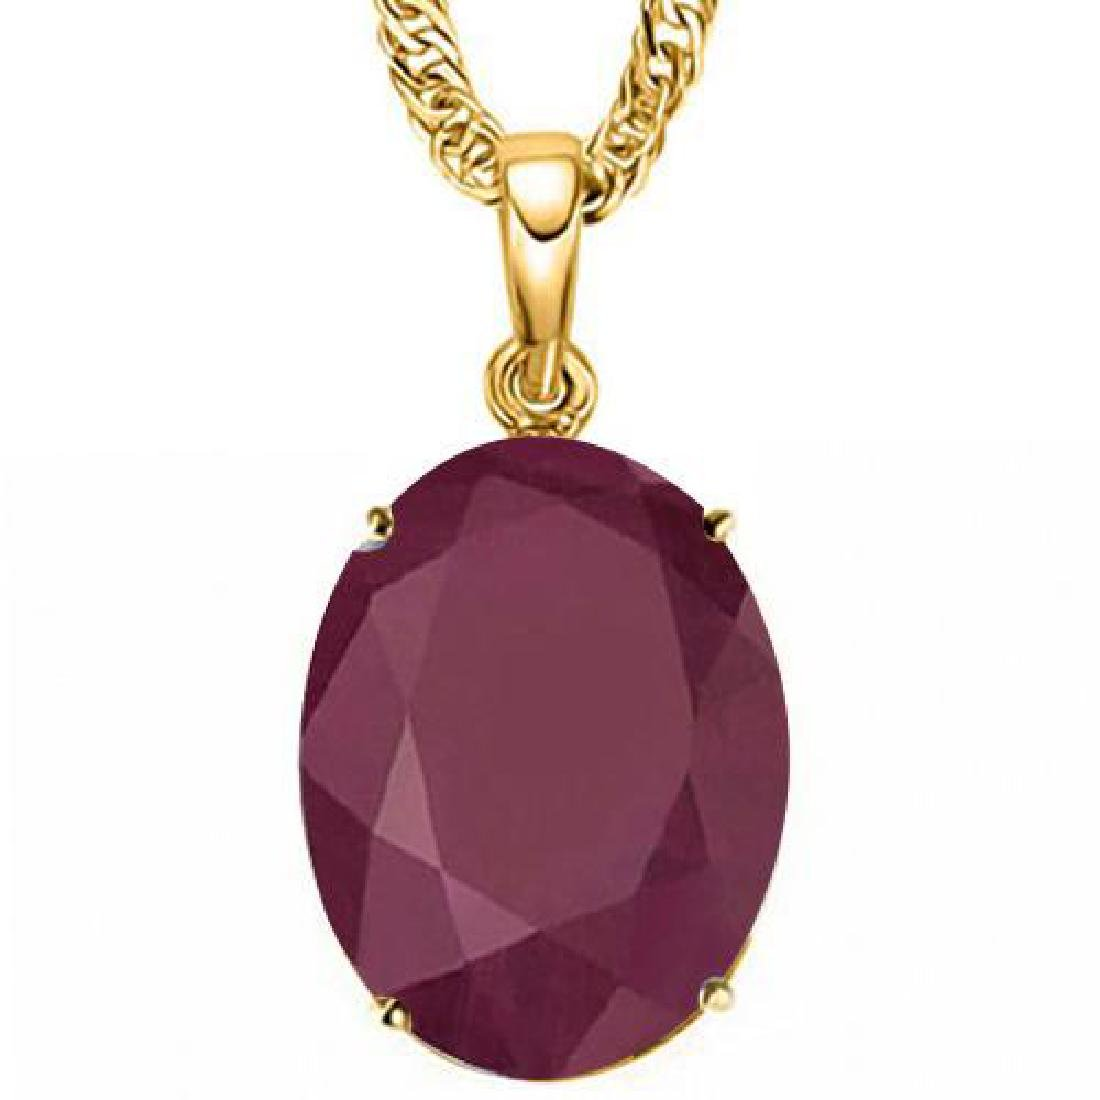 0.95 CTW RUBY 10K SOLID YELLOW GOLD OVAL SHAPE PENDANT